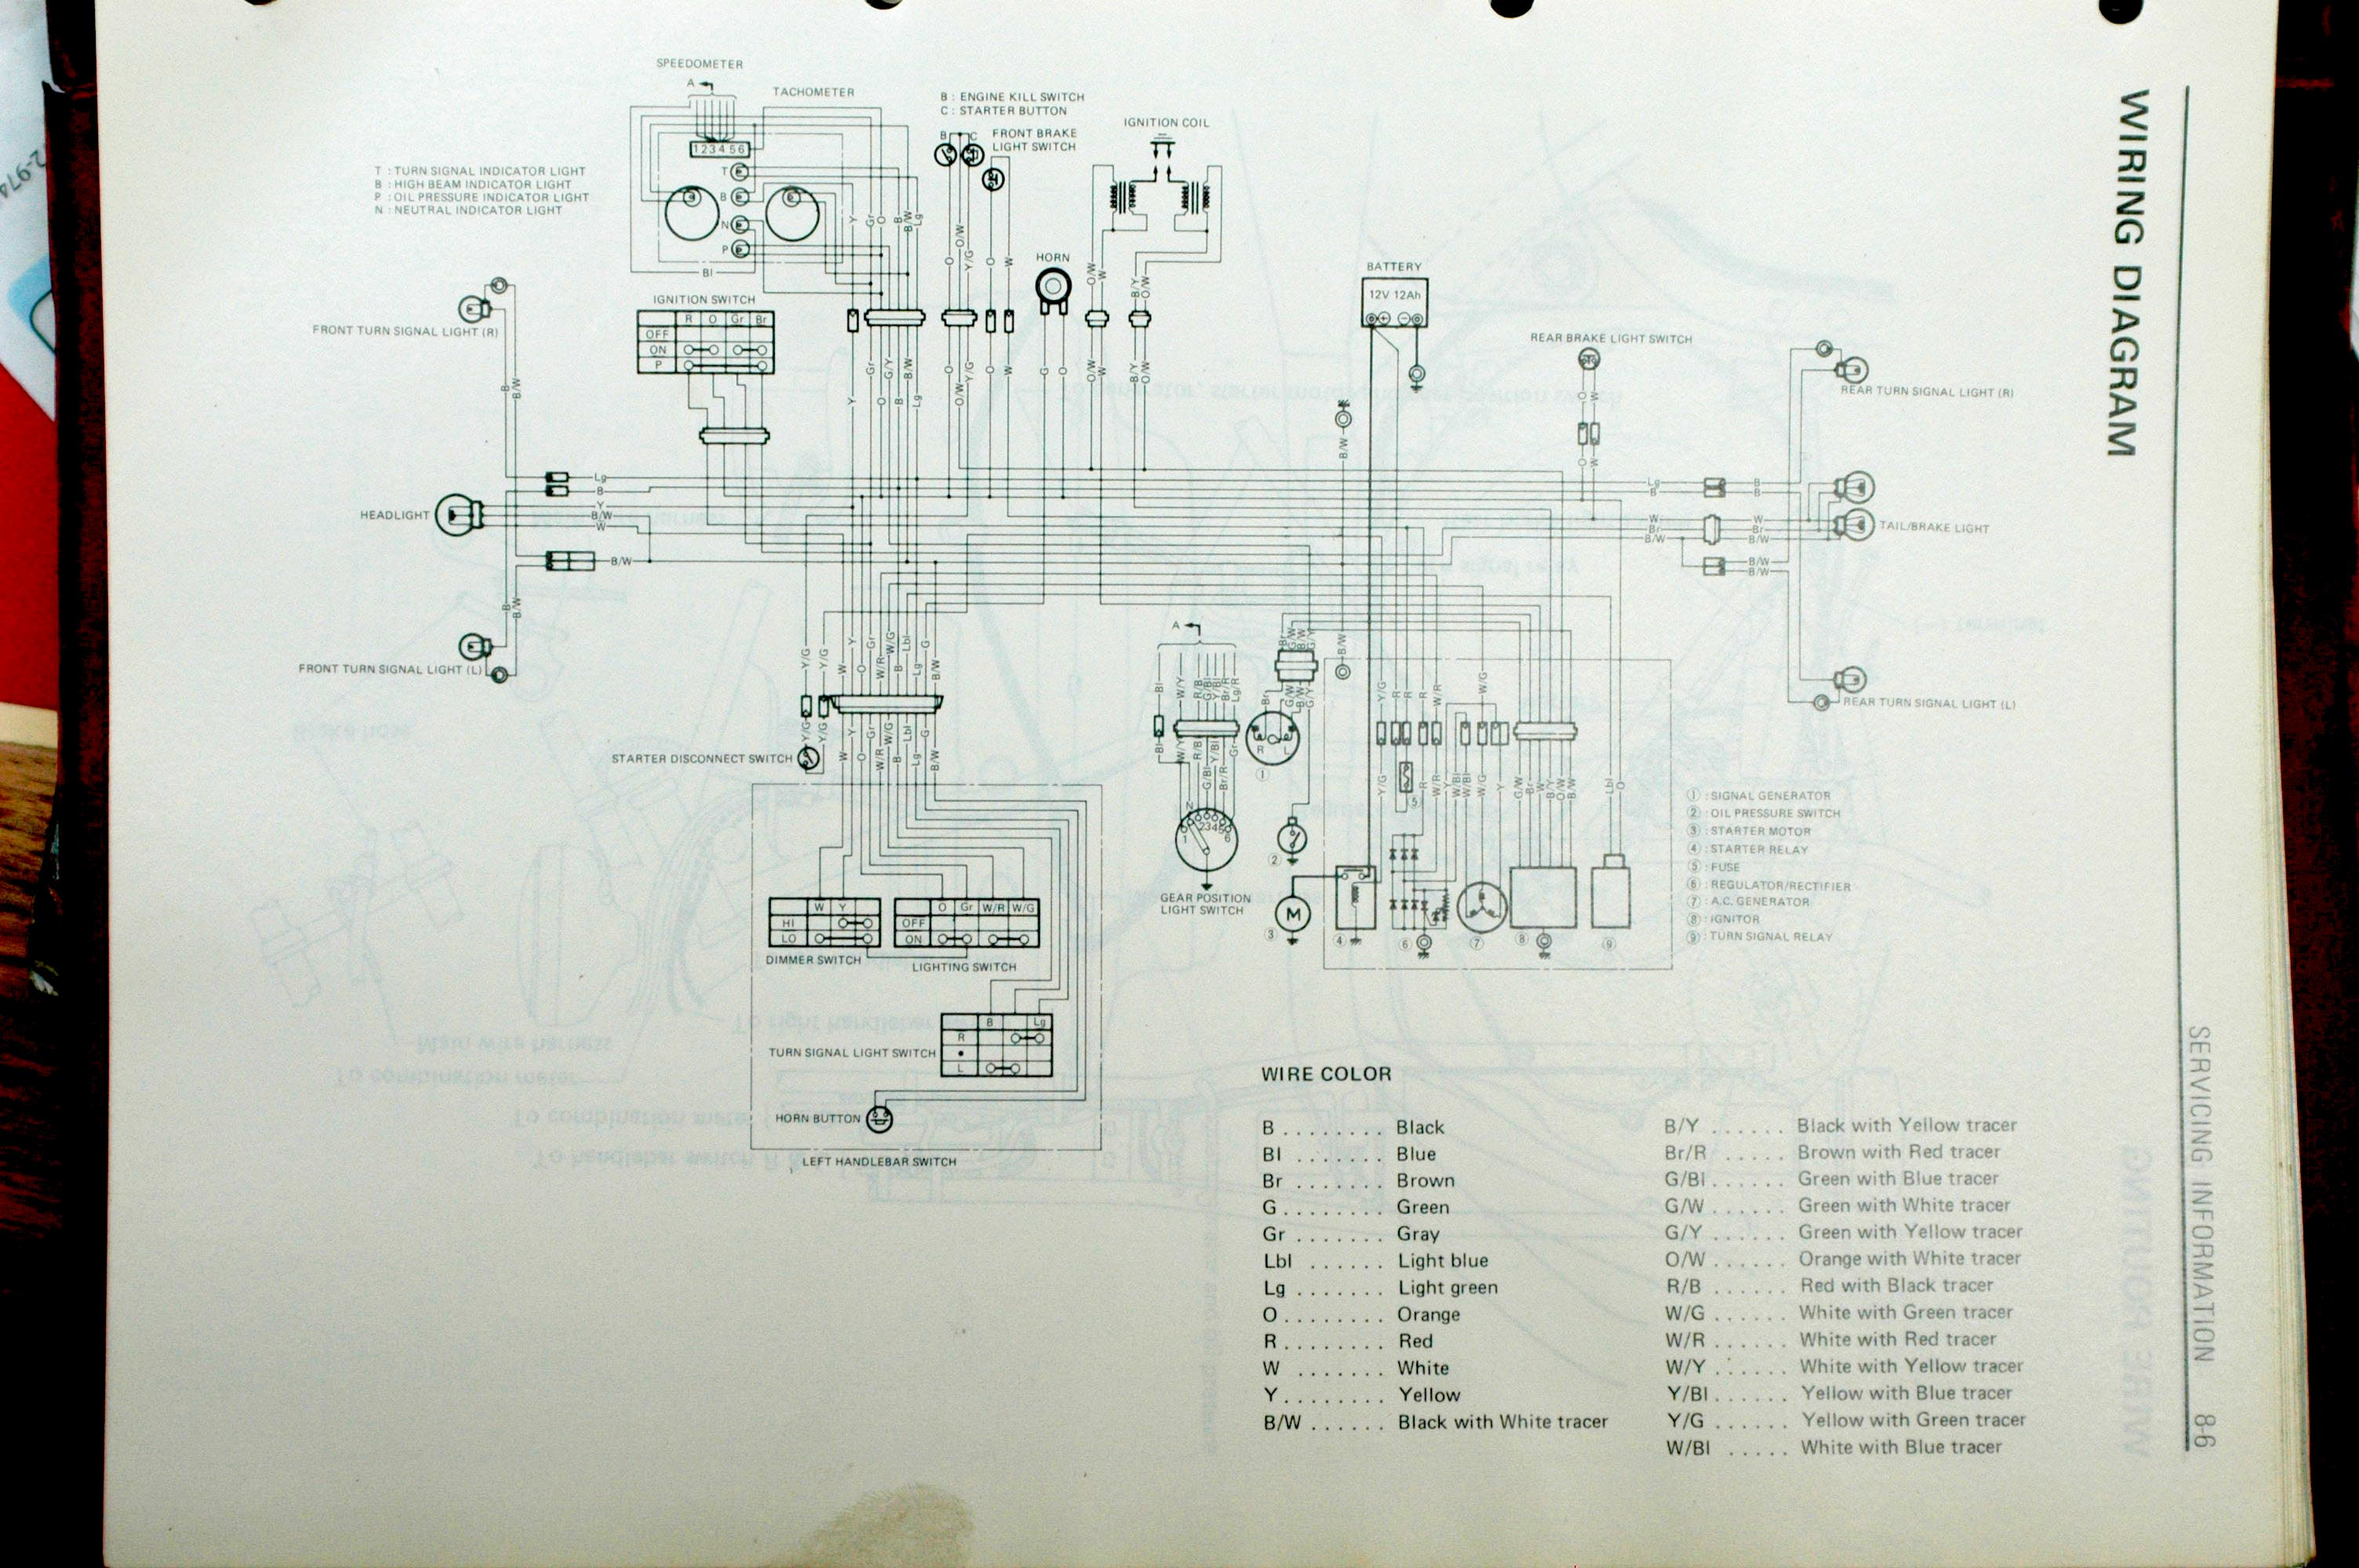 Ex 500 Kawasaki Wiring Diagram Trusted 1982 Kz1300 Diagrams Ex500 03 Product U2022 Vulcan 1500